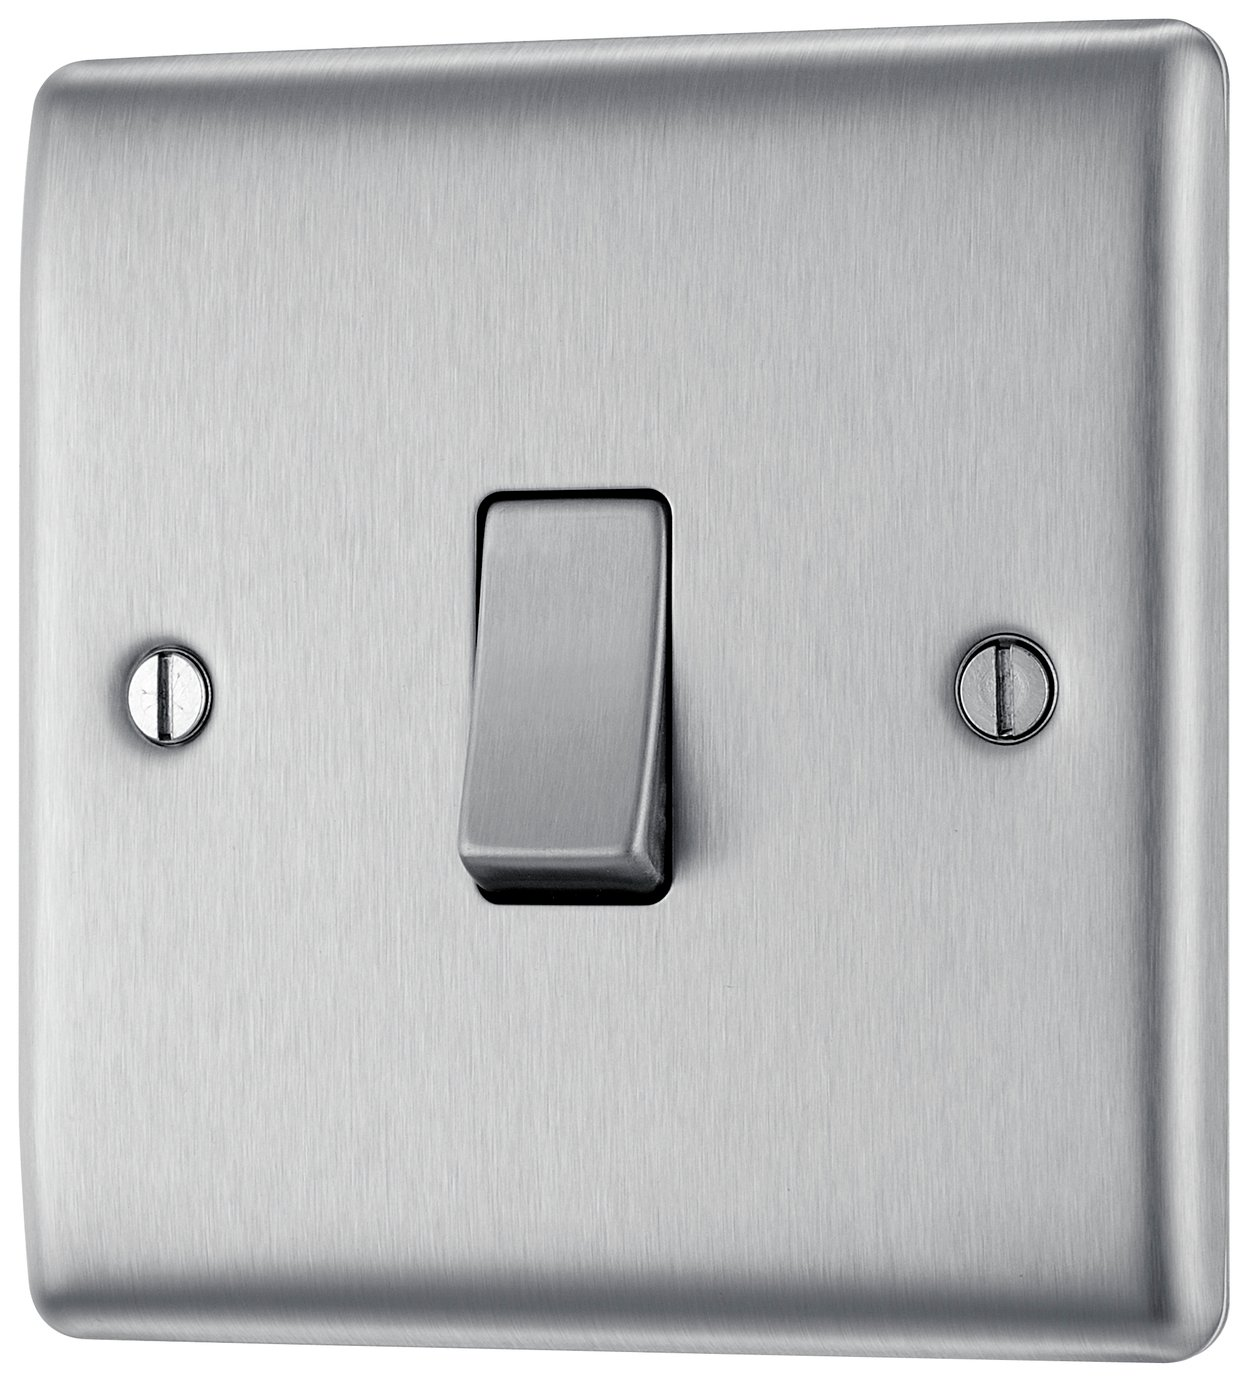 BG Single 2 Way Raised Switch - Stainless Steel